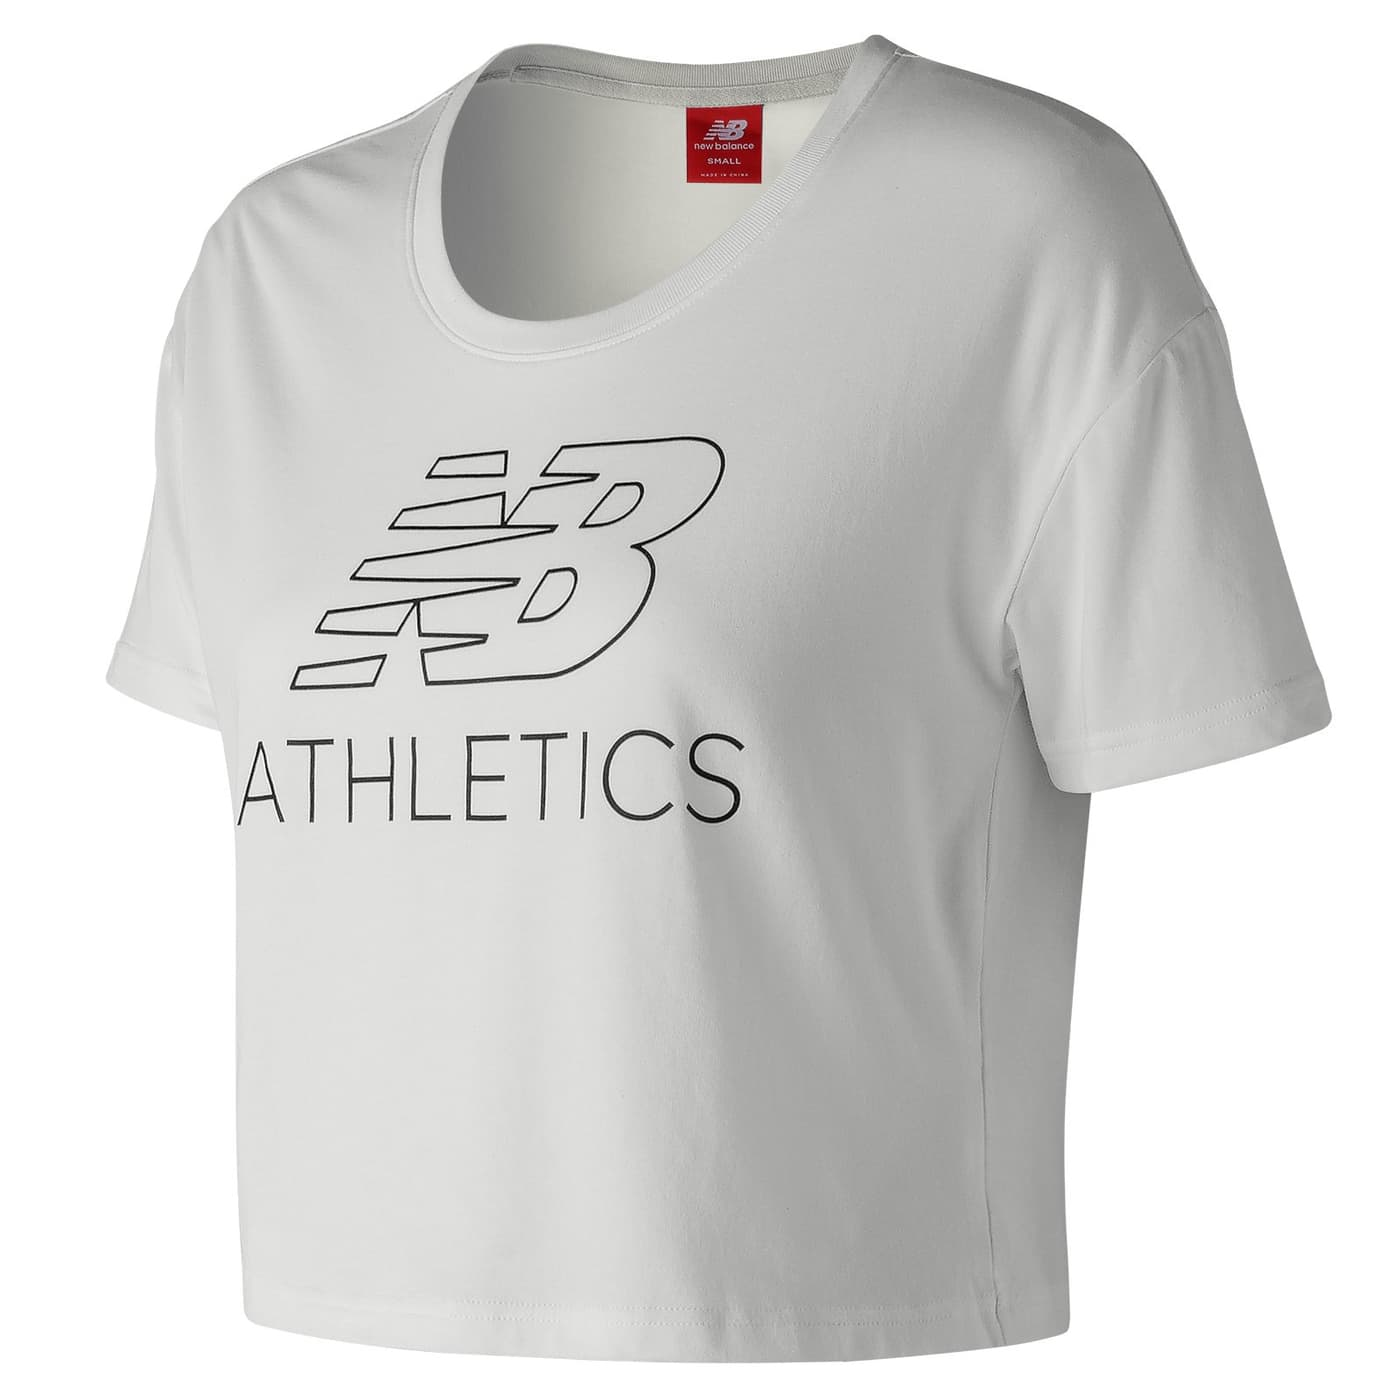 Pour Tee Shirt Femme Athletics Women T Balance New Cropped PkwO80n